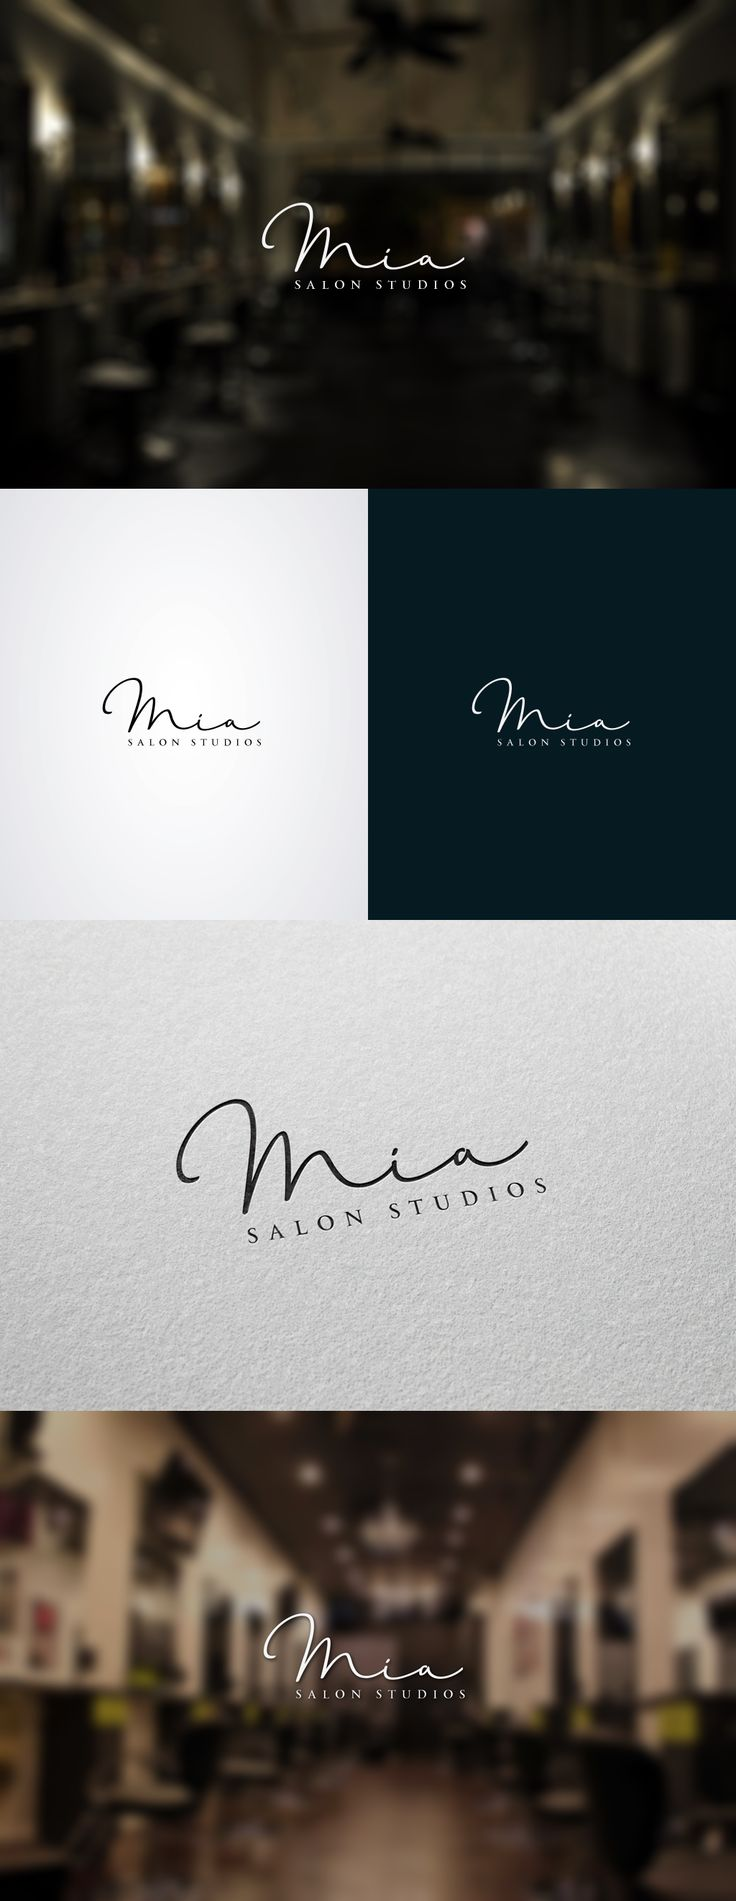 New salon studios startup needs a logo!                                                                                                                                                      More